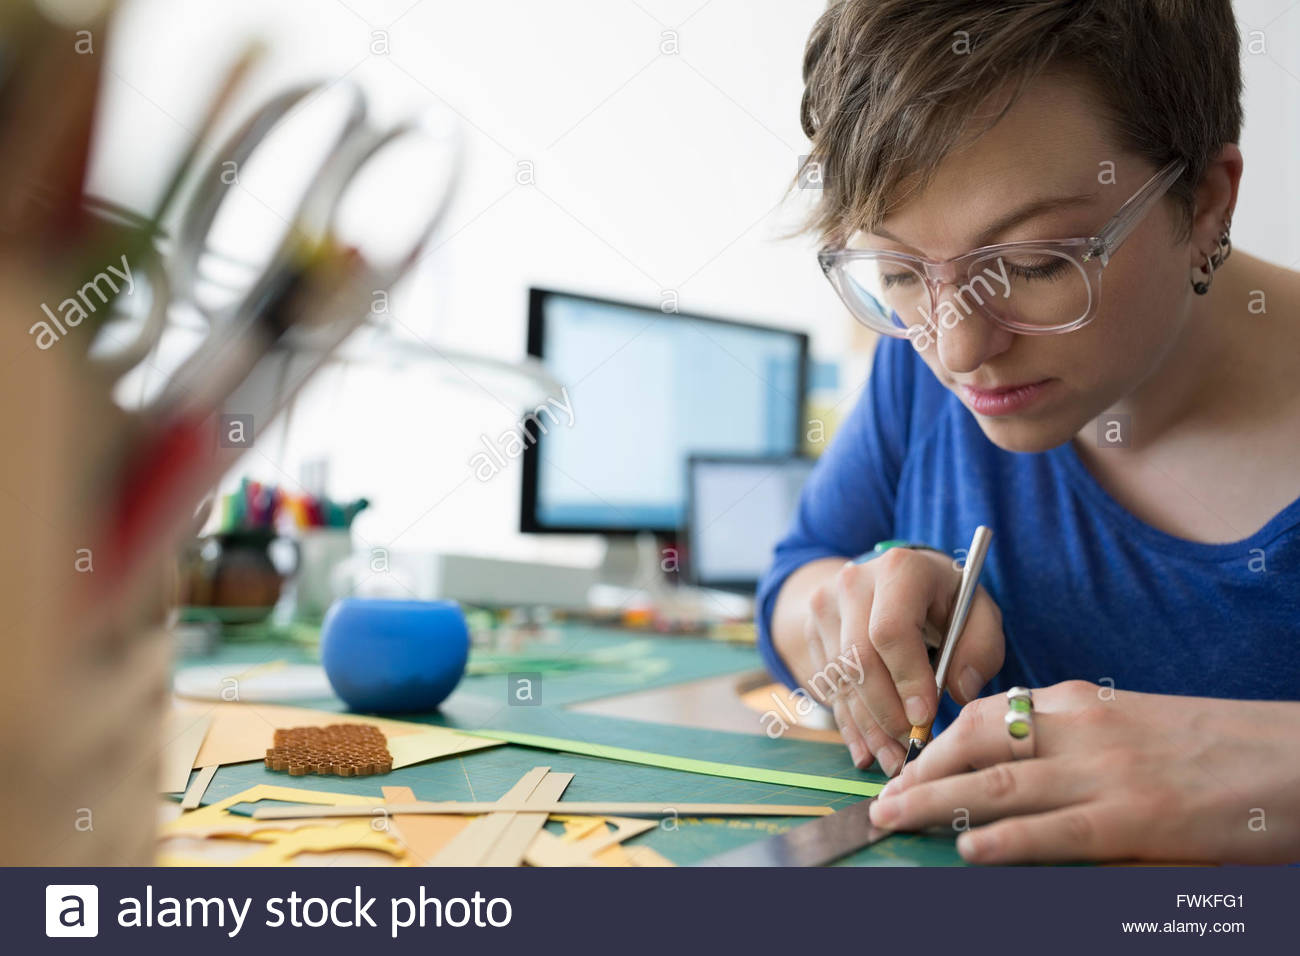 Focused craftswoman cutting pieces with ruler utility knife - Stock Image